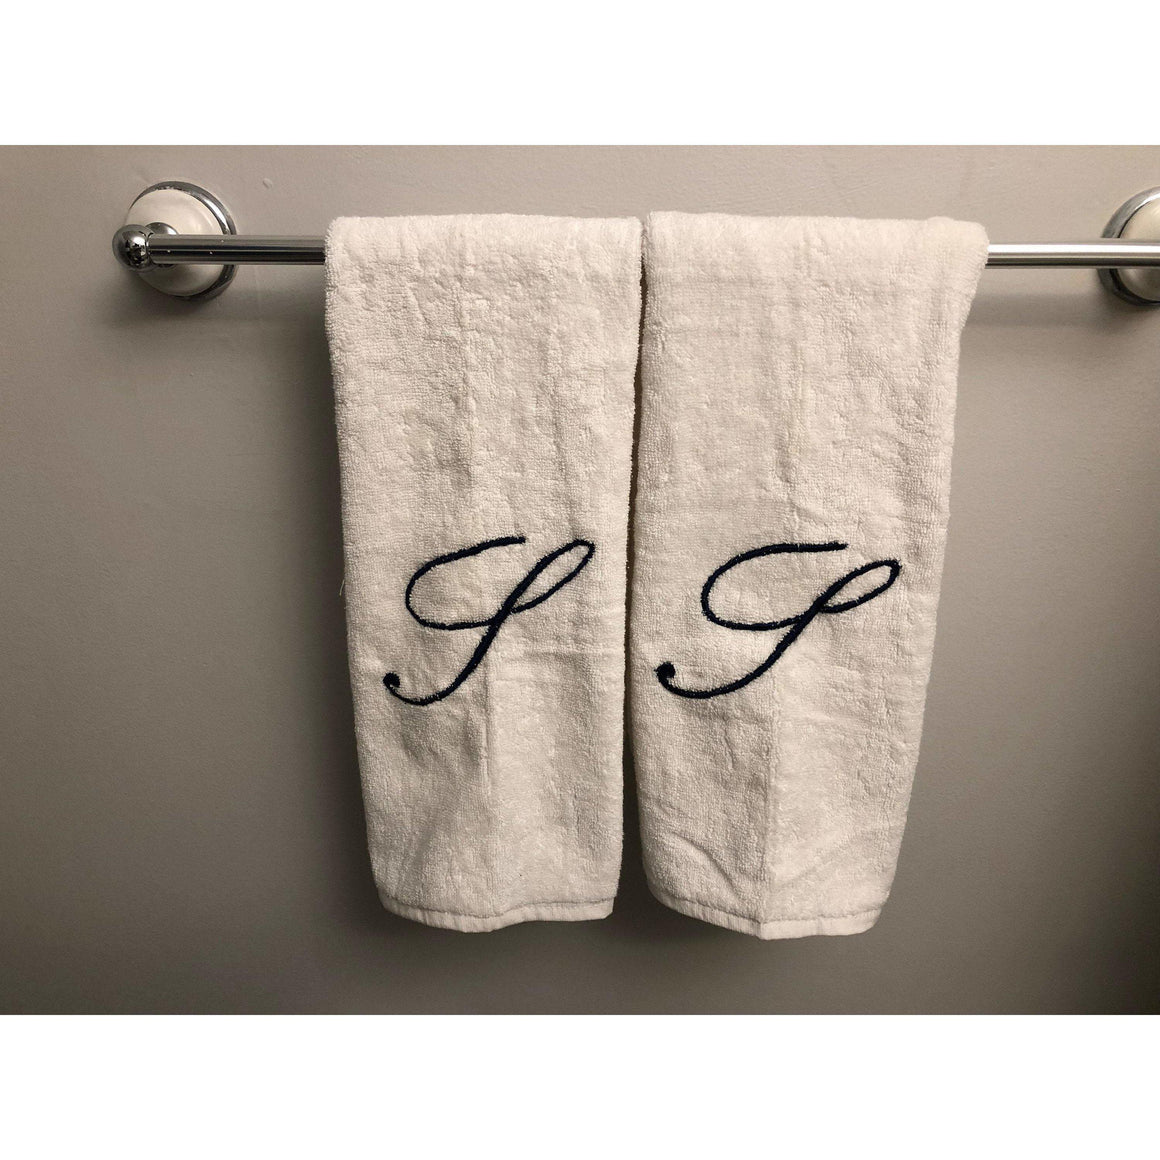 Letter Face Towel, Cotton Luxury Face Towel, Personalized Letter 16x20 Towel Set,  For Bathroom, Kitchen and Spa